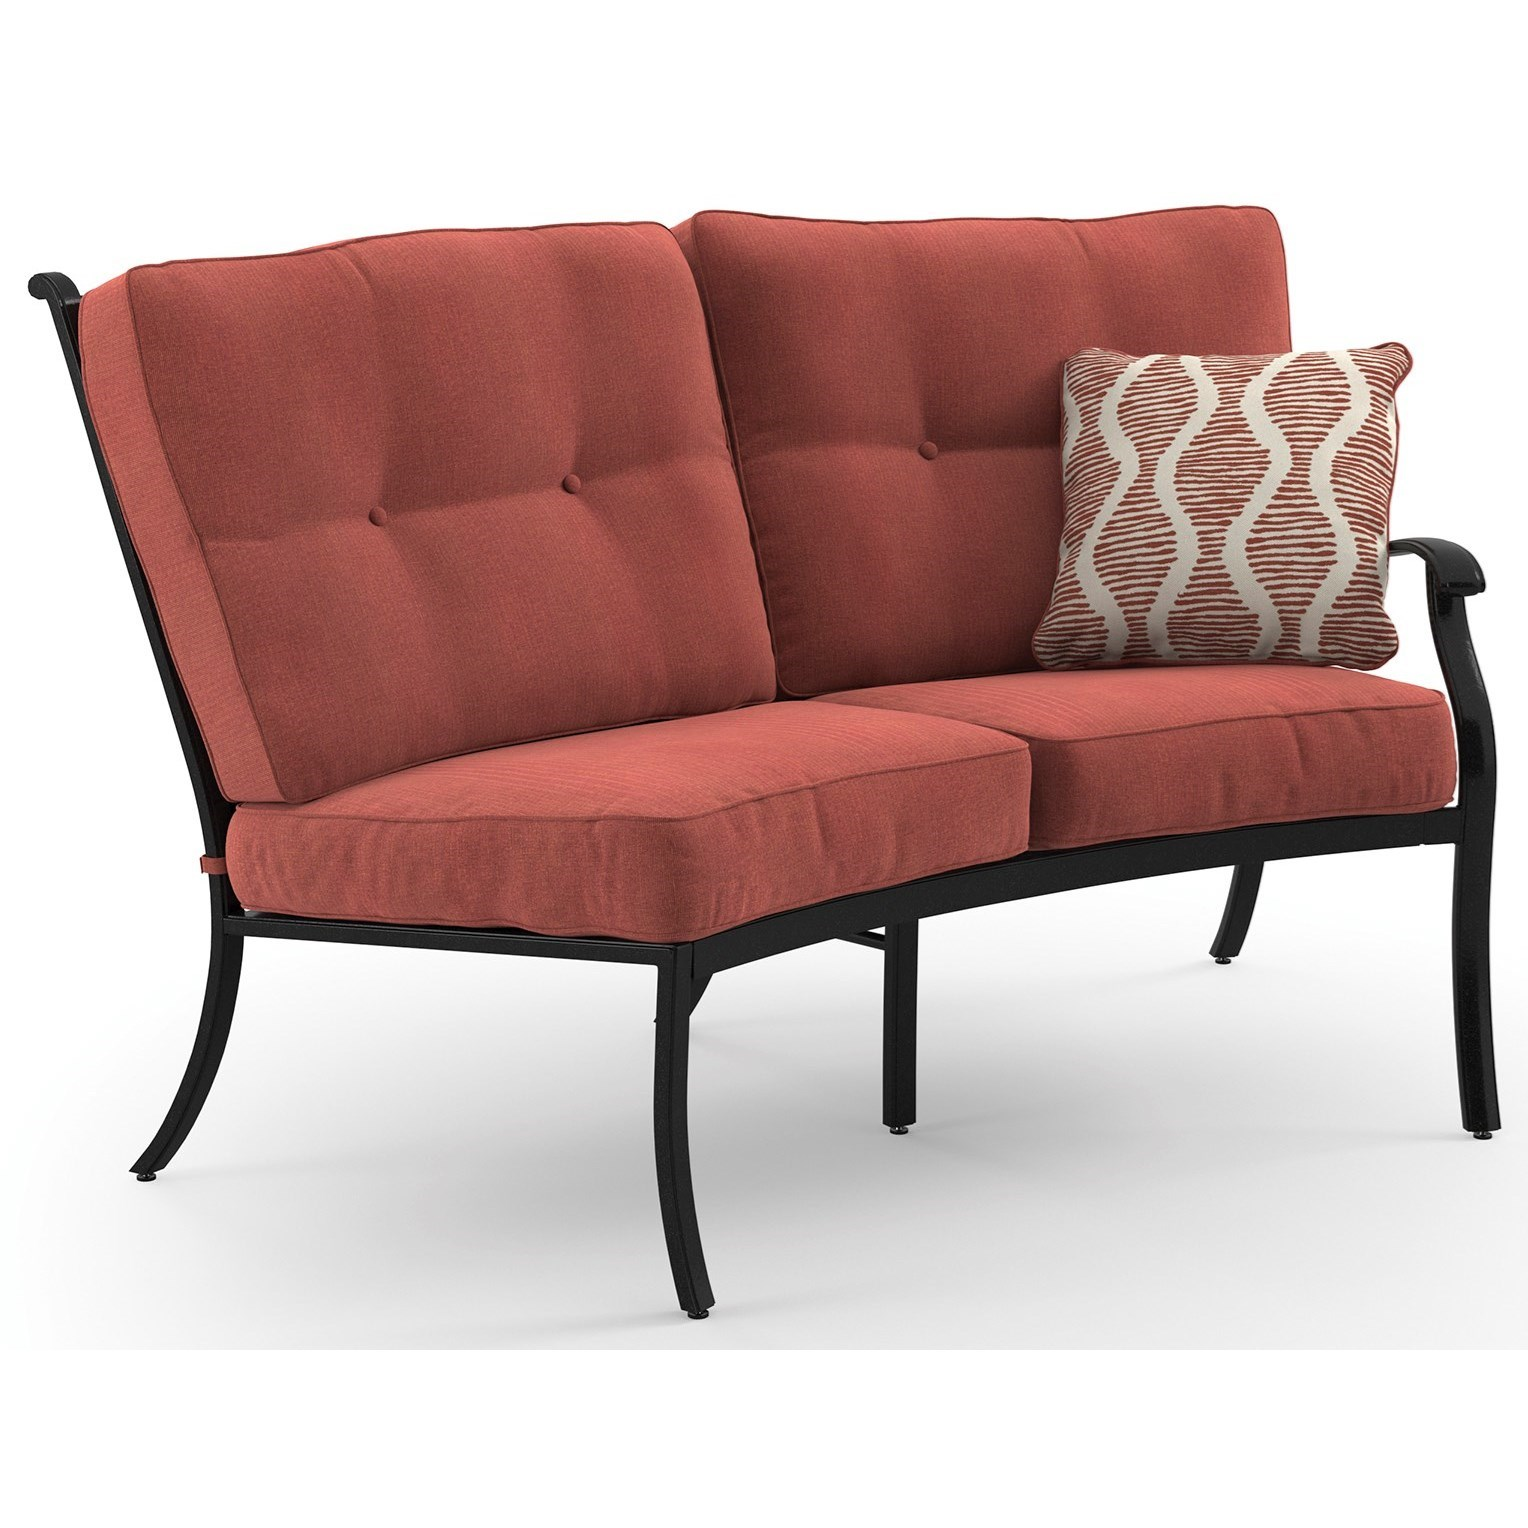 Signature Design by Ashley Burnella RAF Loveseat with Cushion - Item Number: P456-856